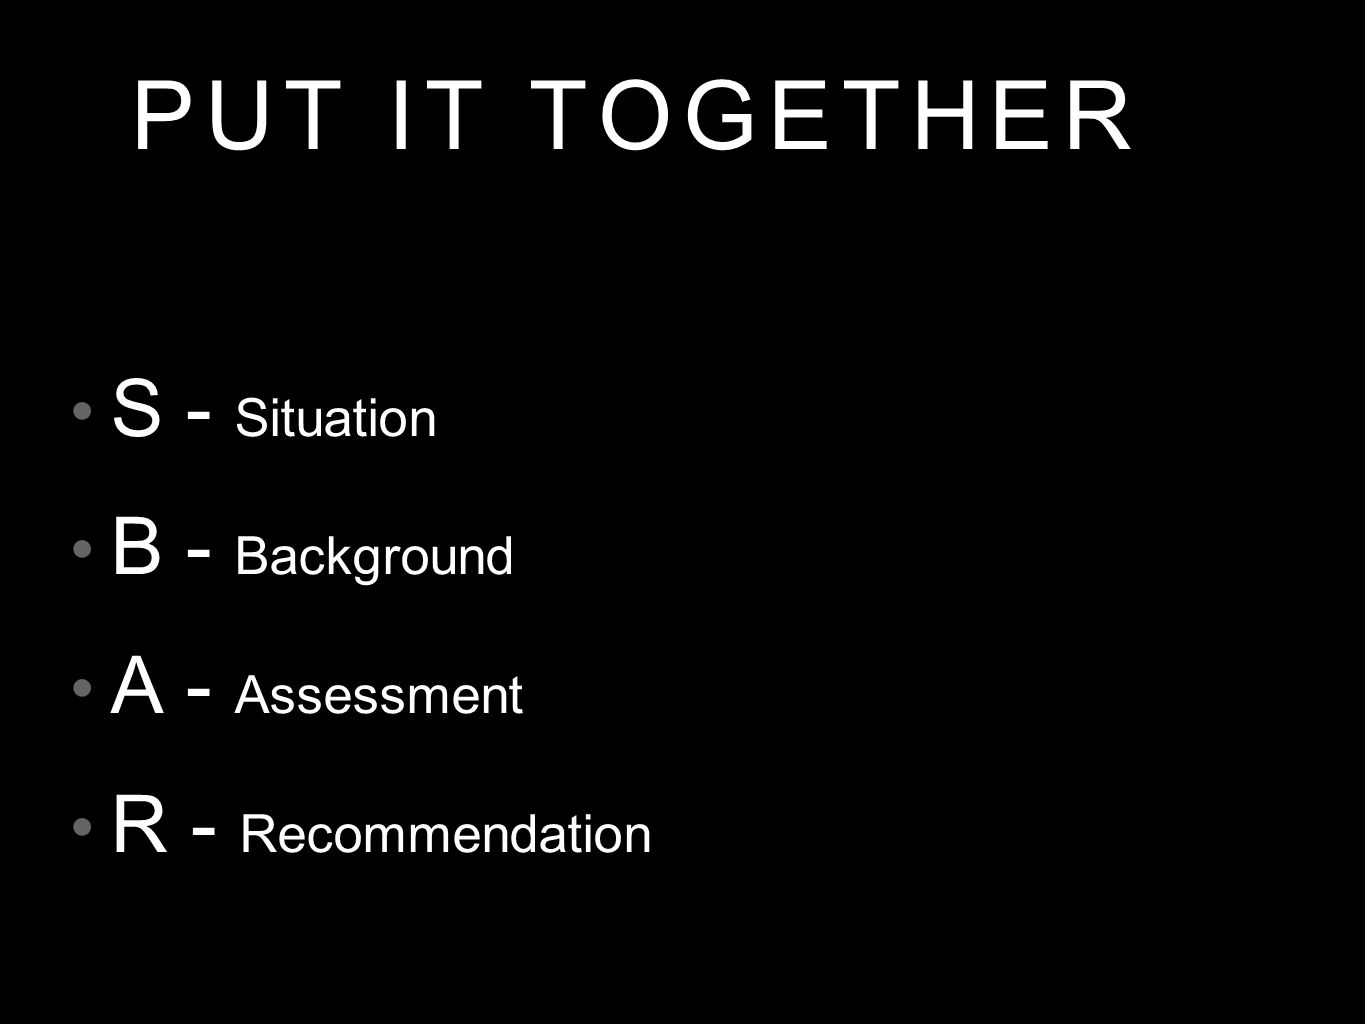 PUT IT TOGETHER S - Situation B - Background A - Assessment R - Recommendation